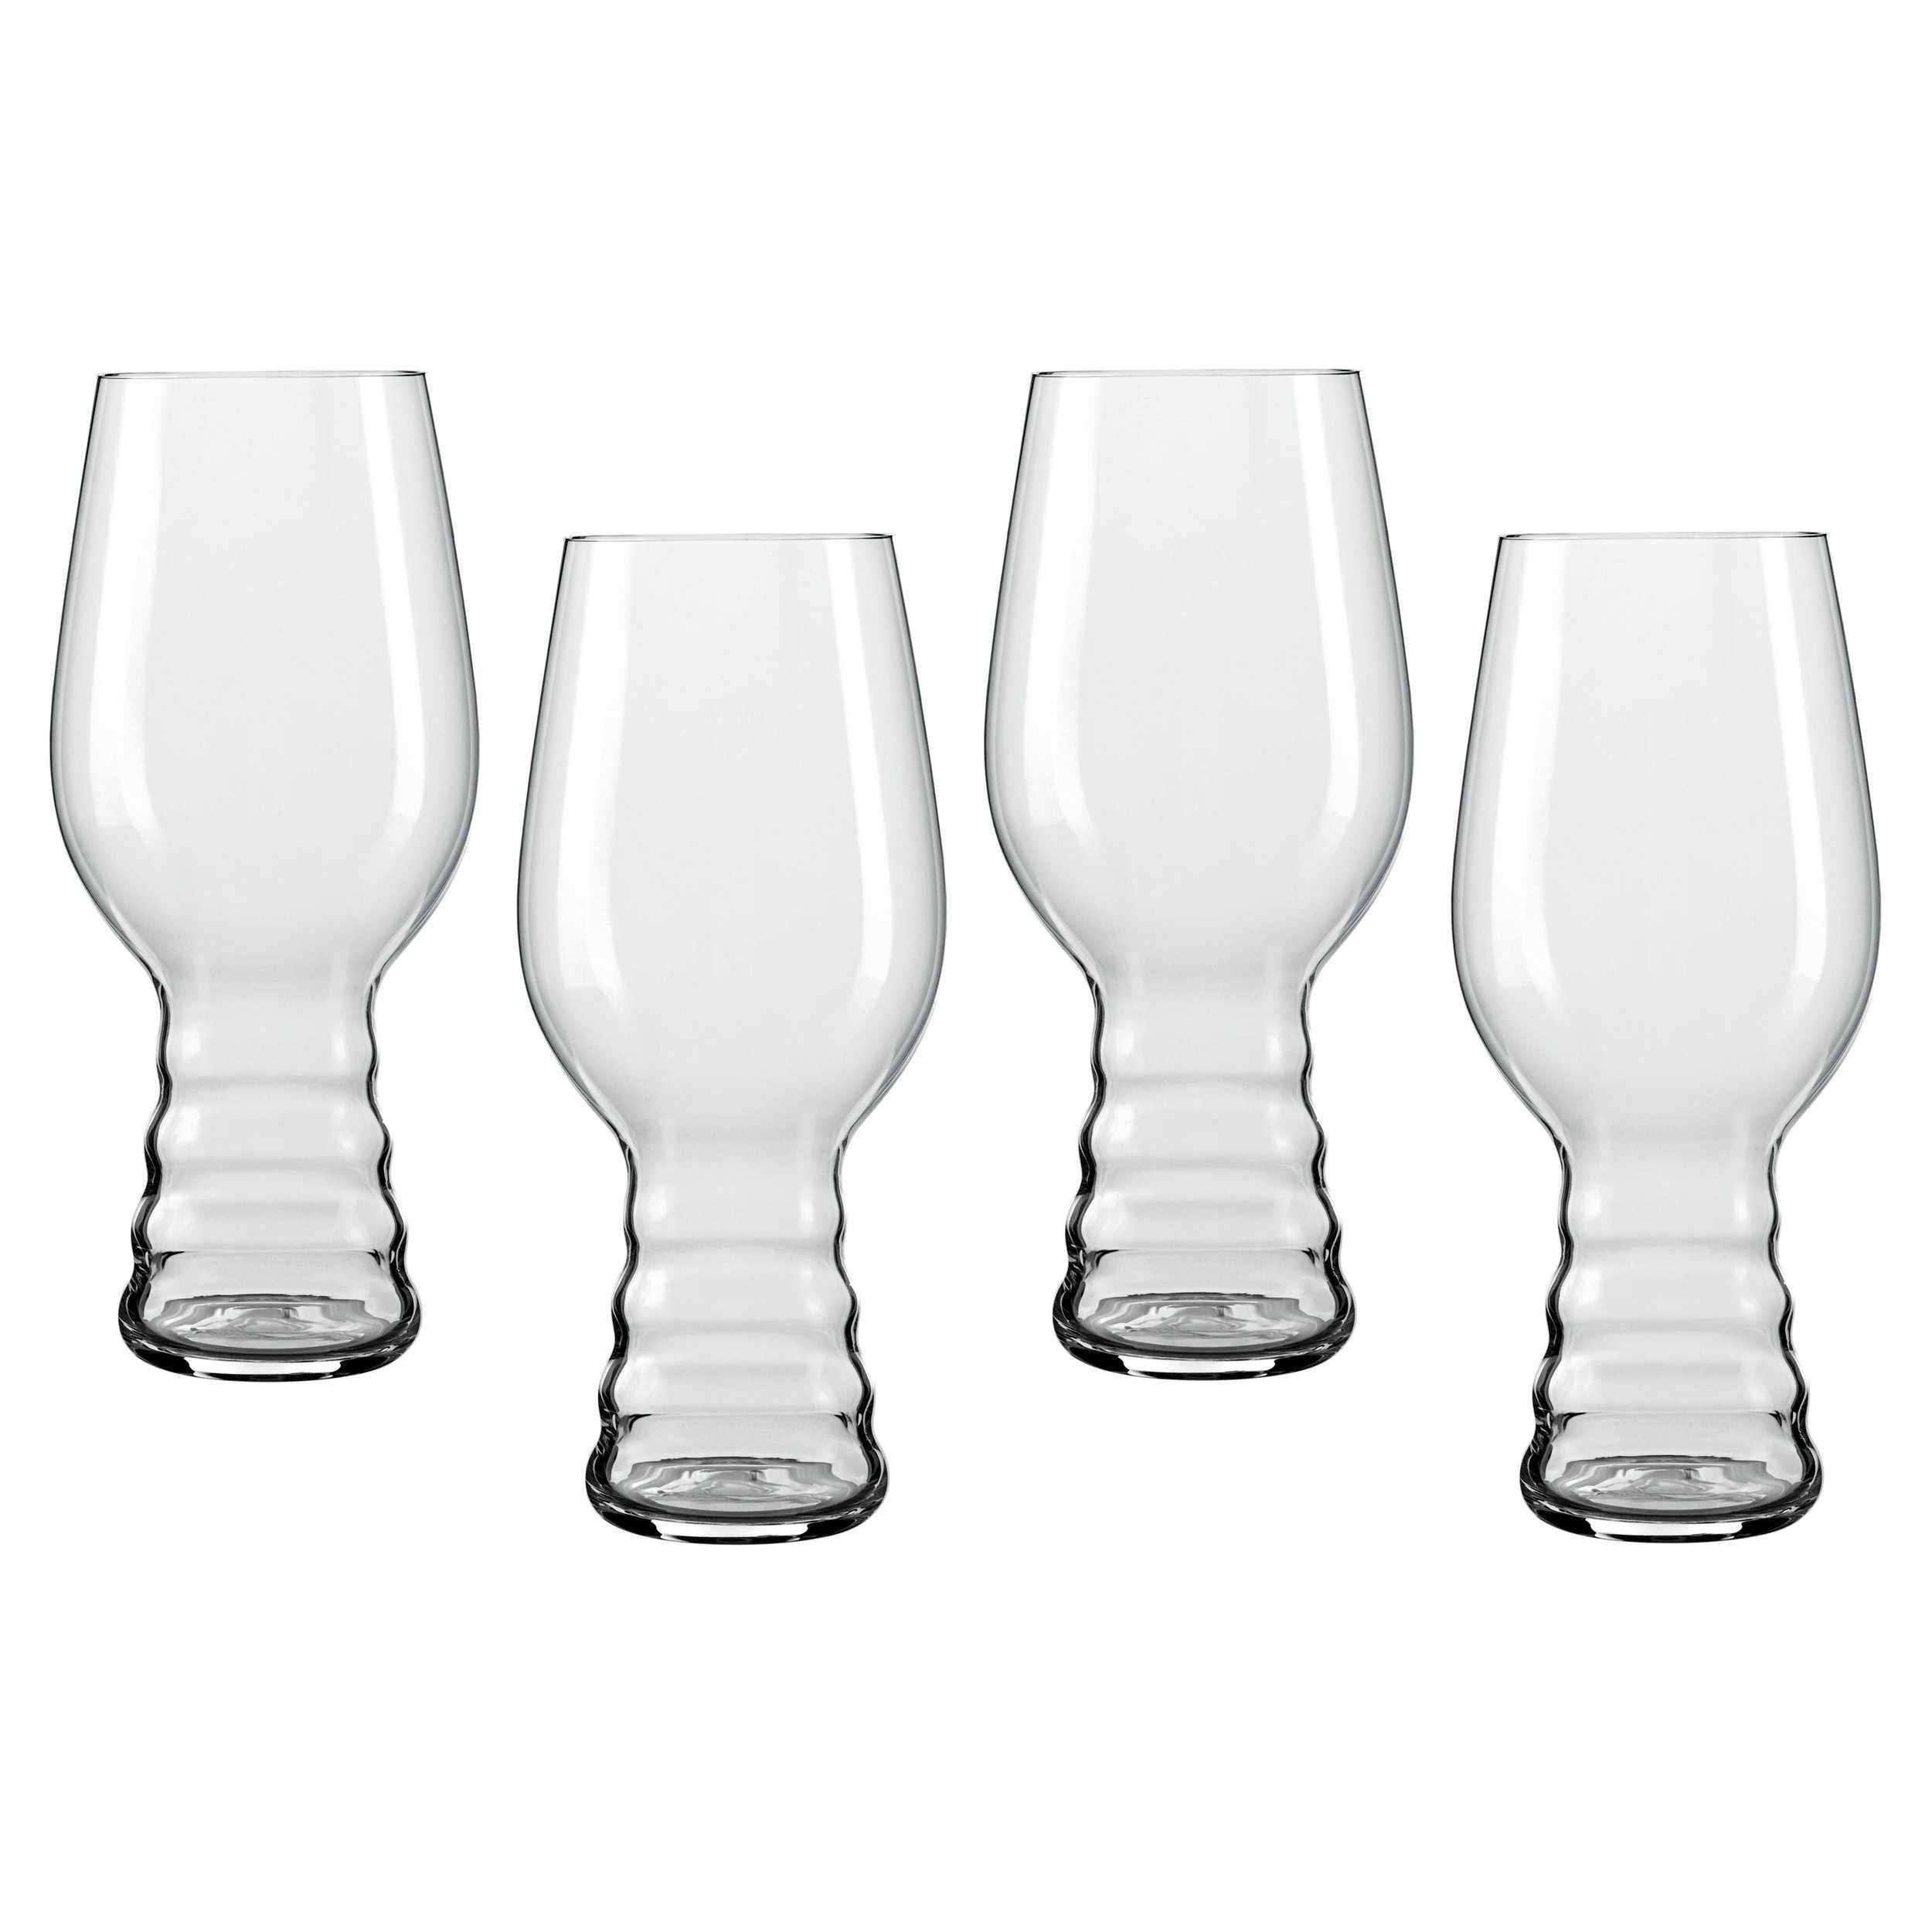 Spiegelau IPA Glasses - Set of 4